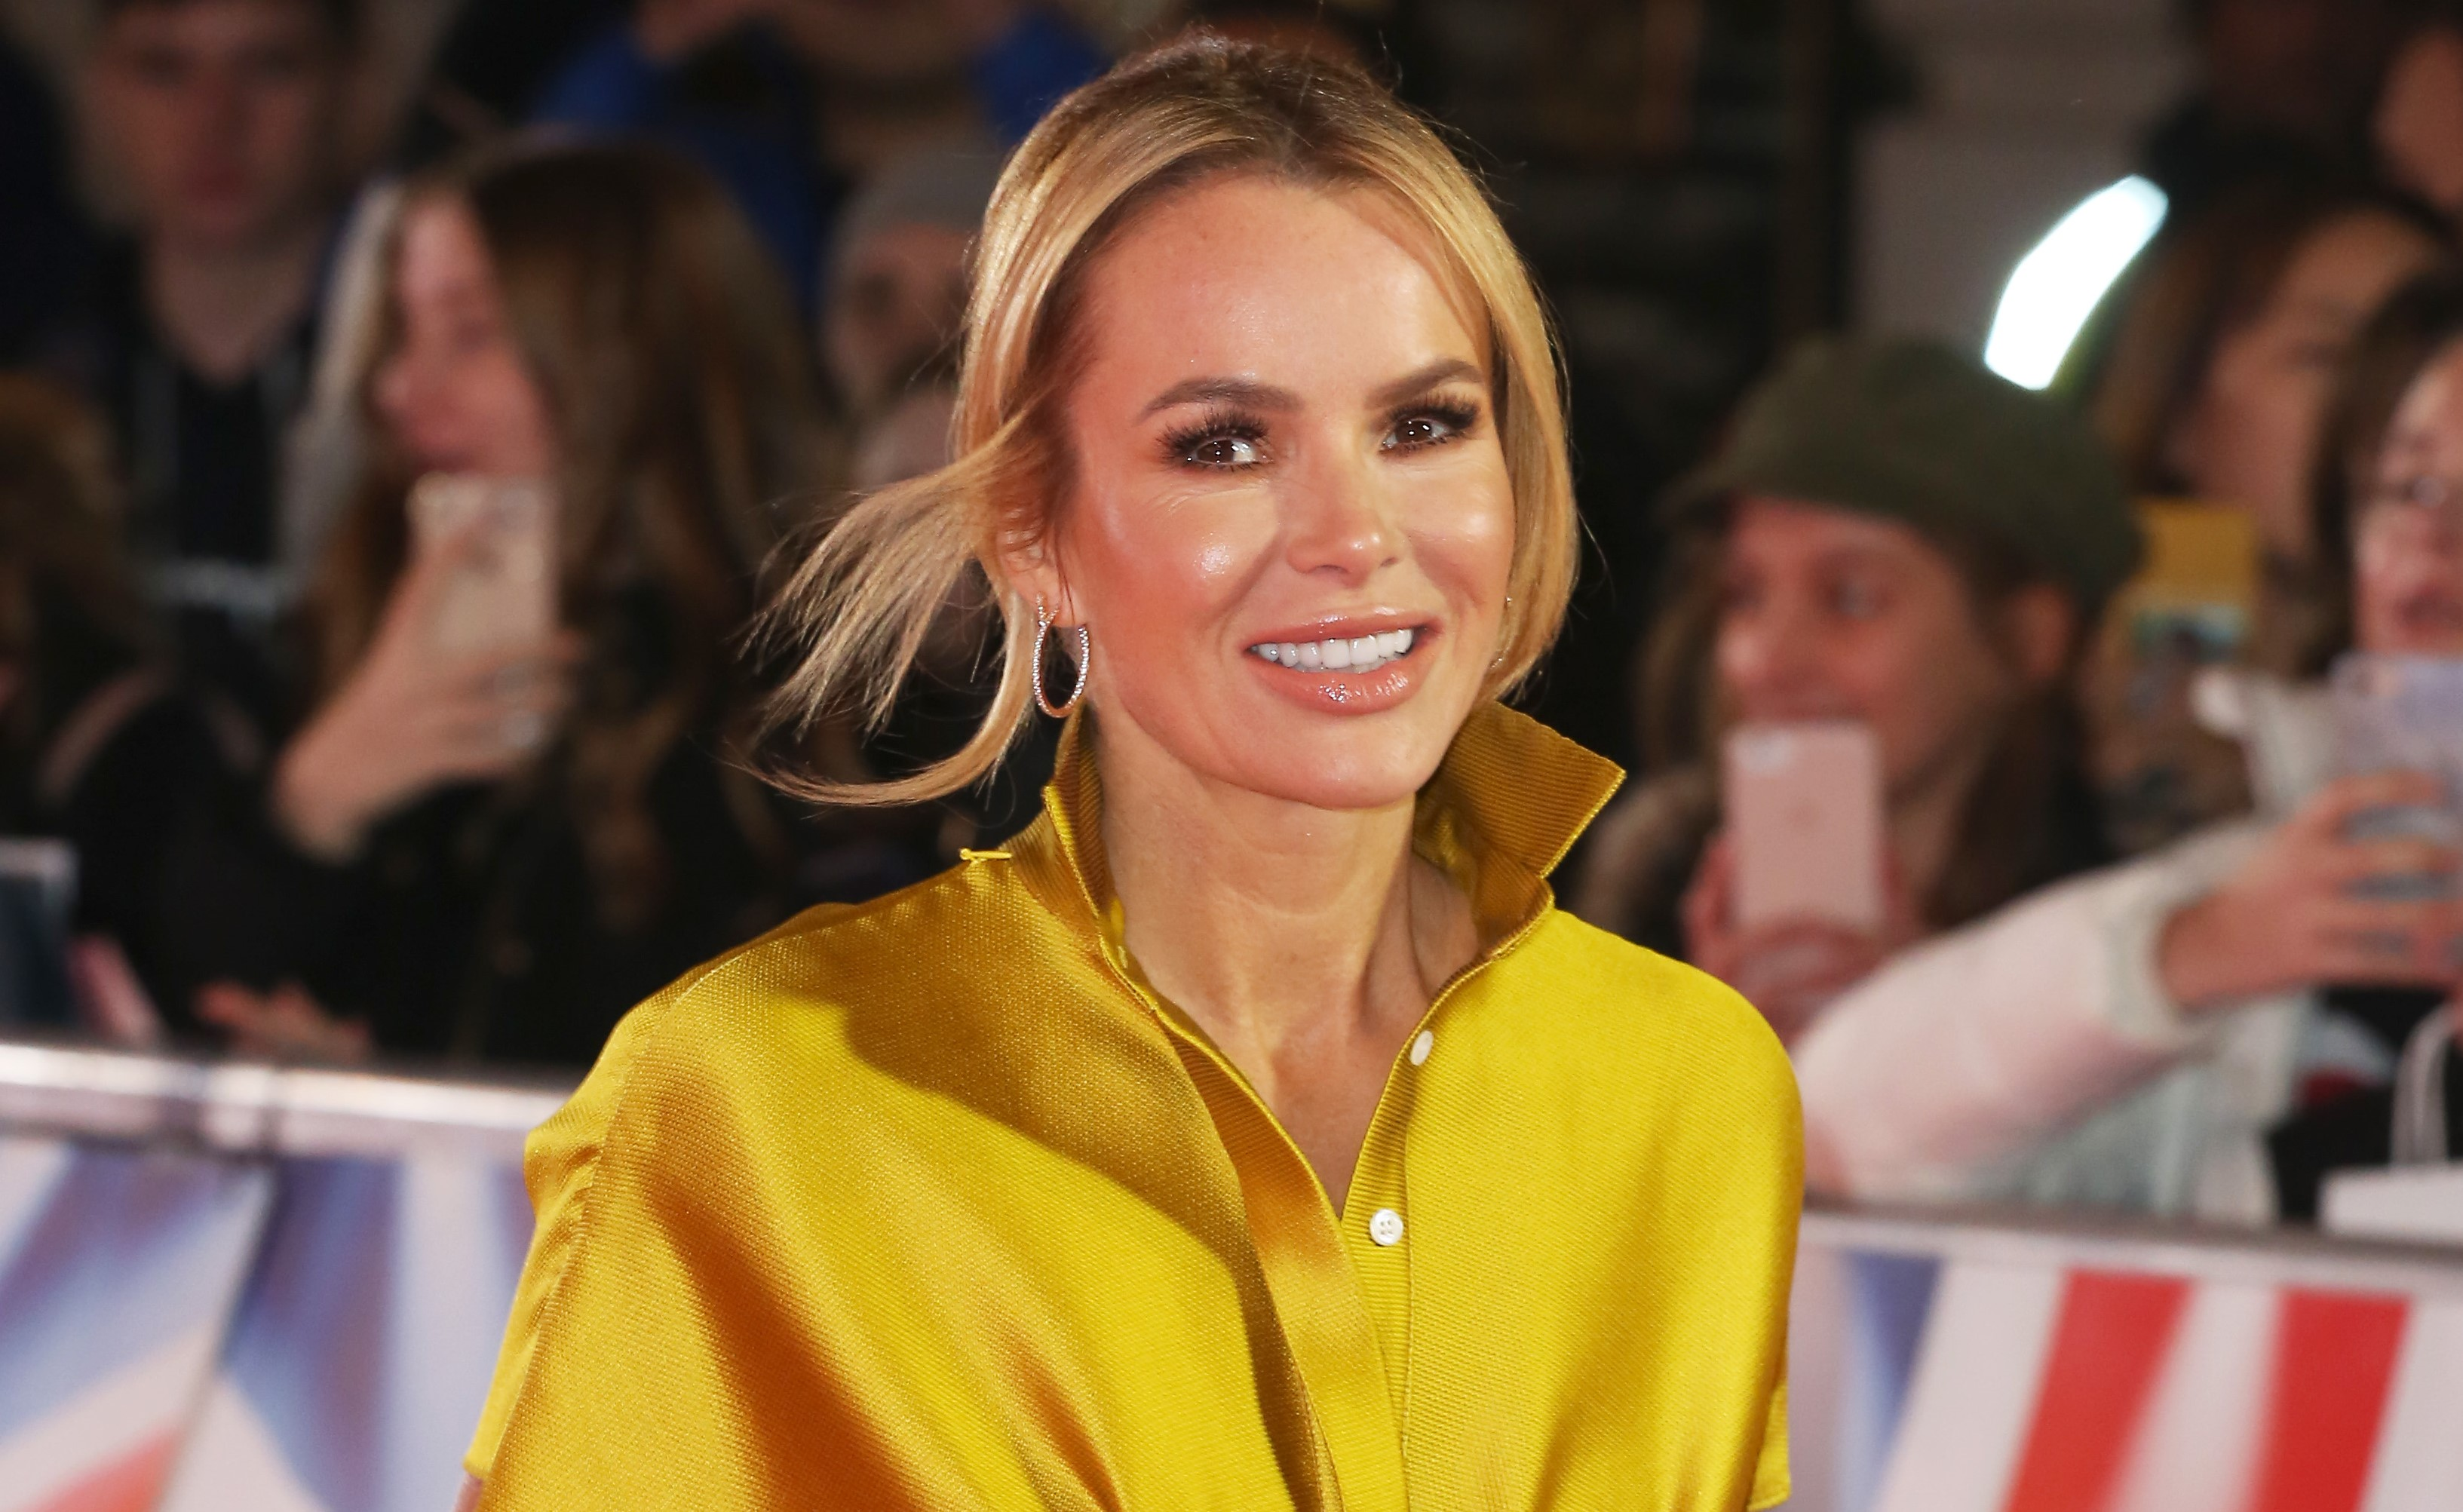 Amanda Holden hits back at claims she'll tone down her risqué outfits on BGT